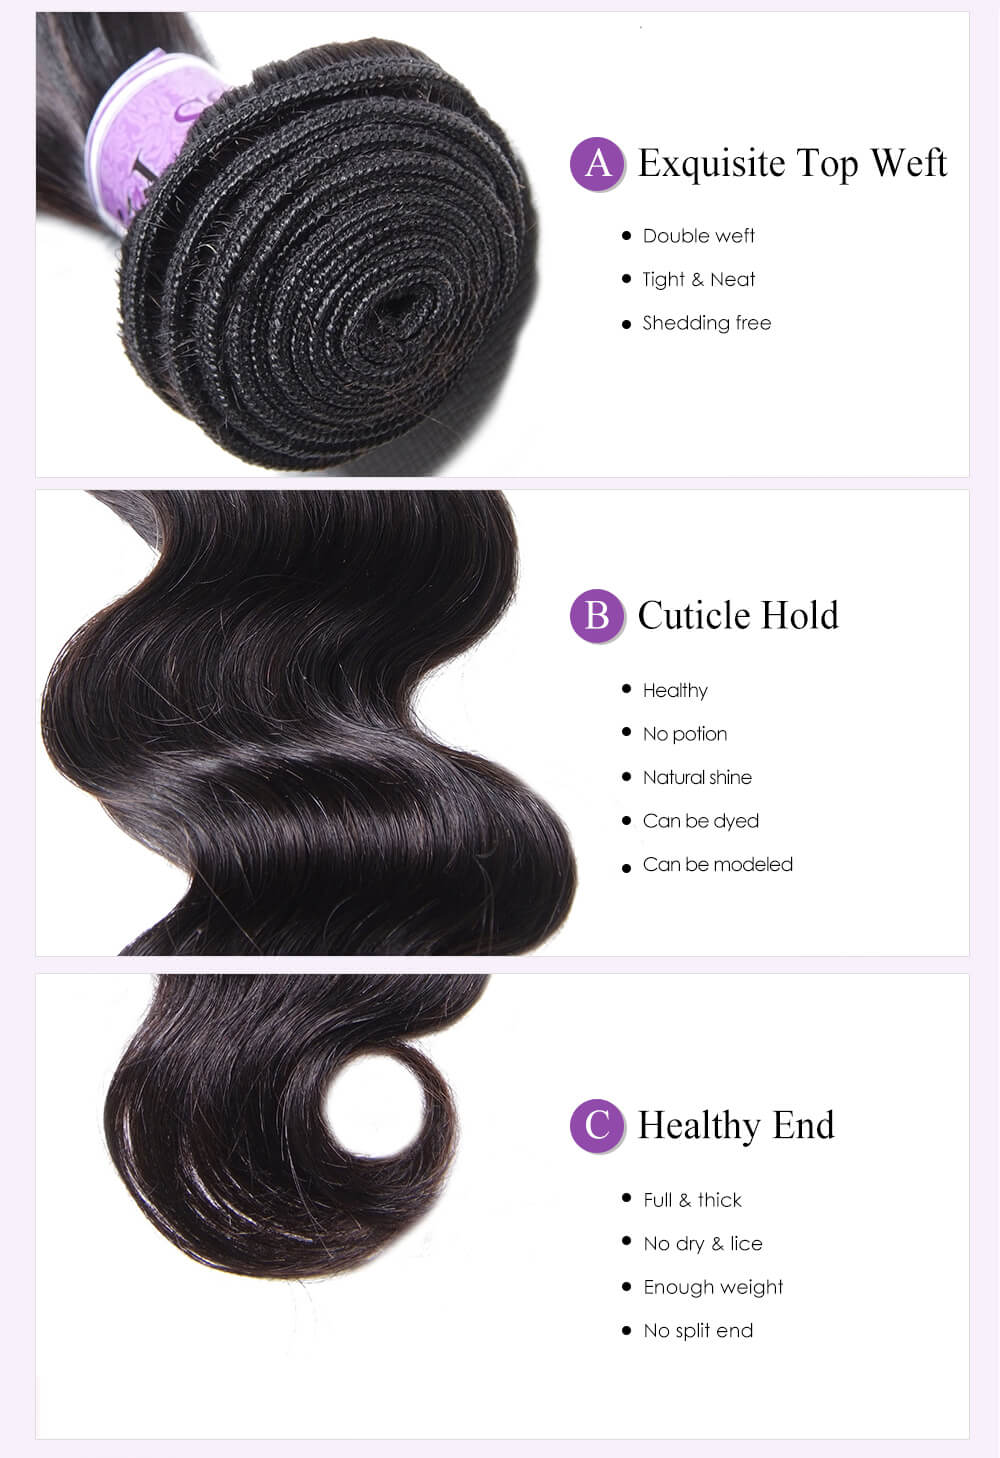 Unice kysiss Indian body wave 3 bundles hair